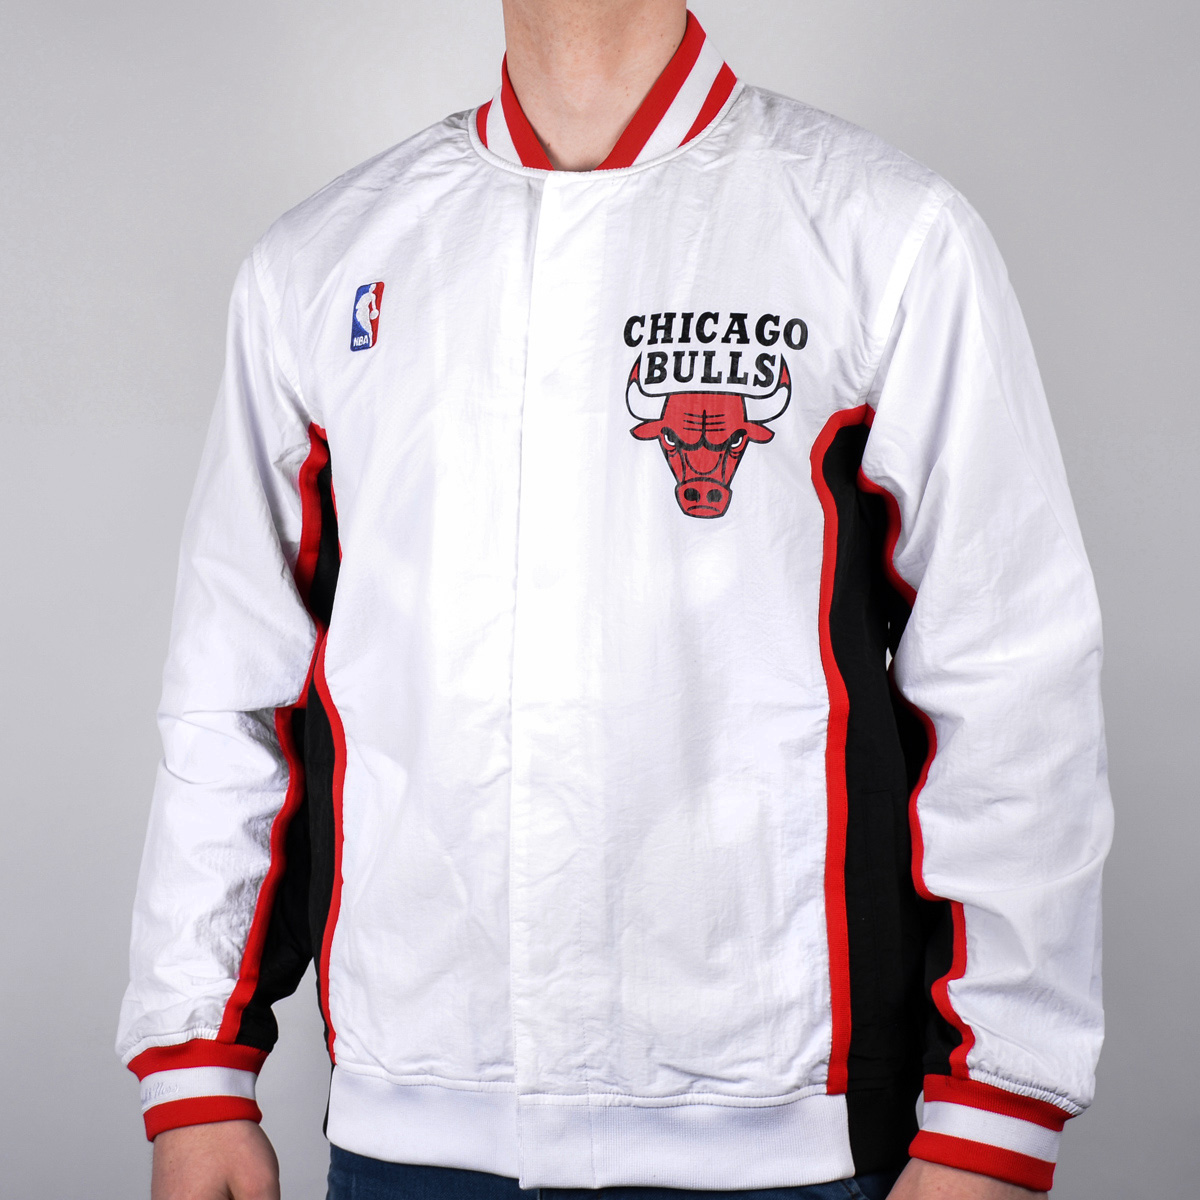 watch 9b8d3 f139c chicago-bulls-gear